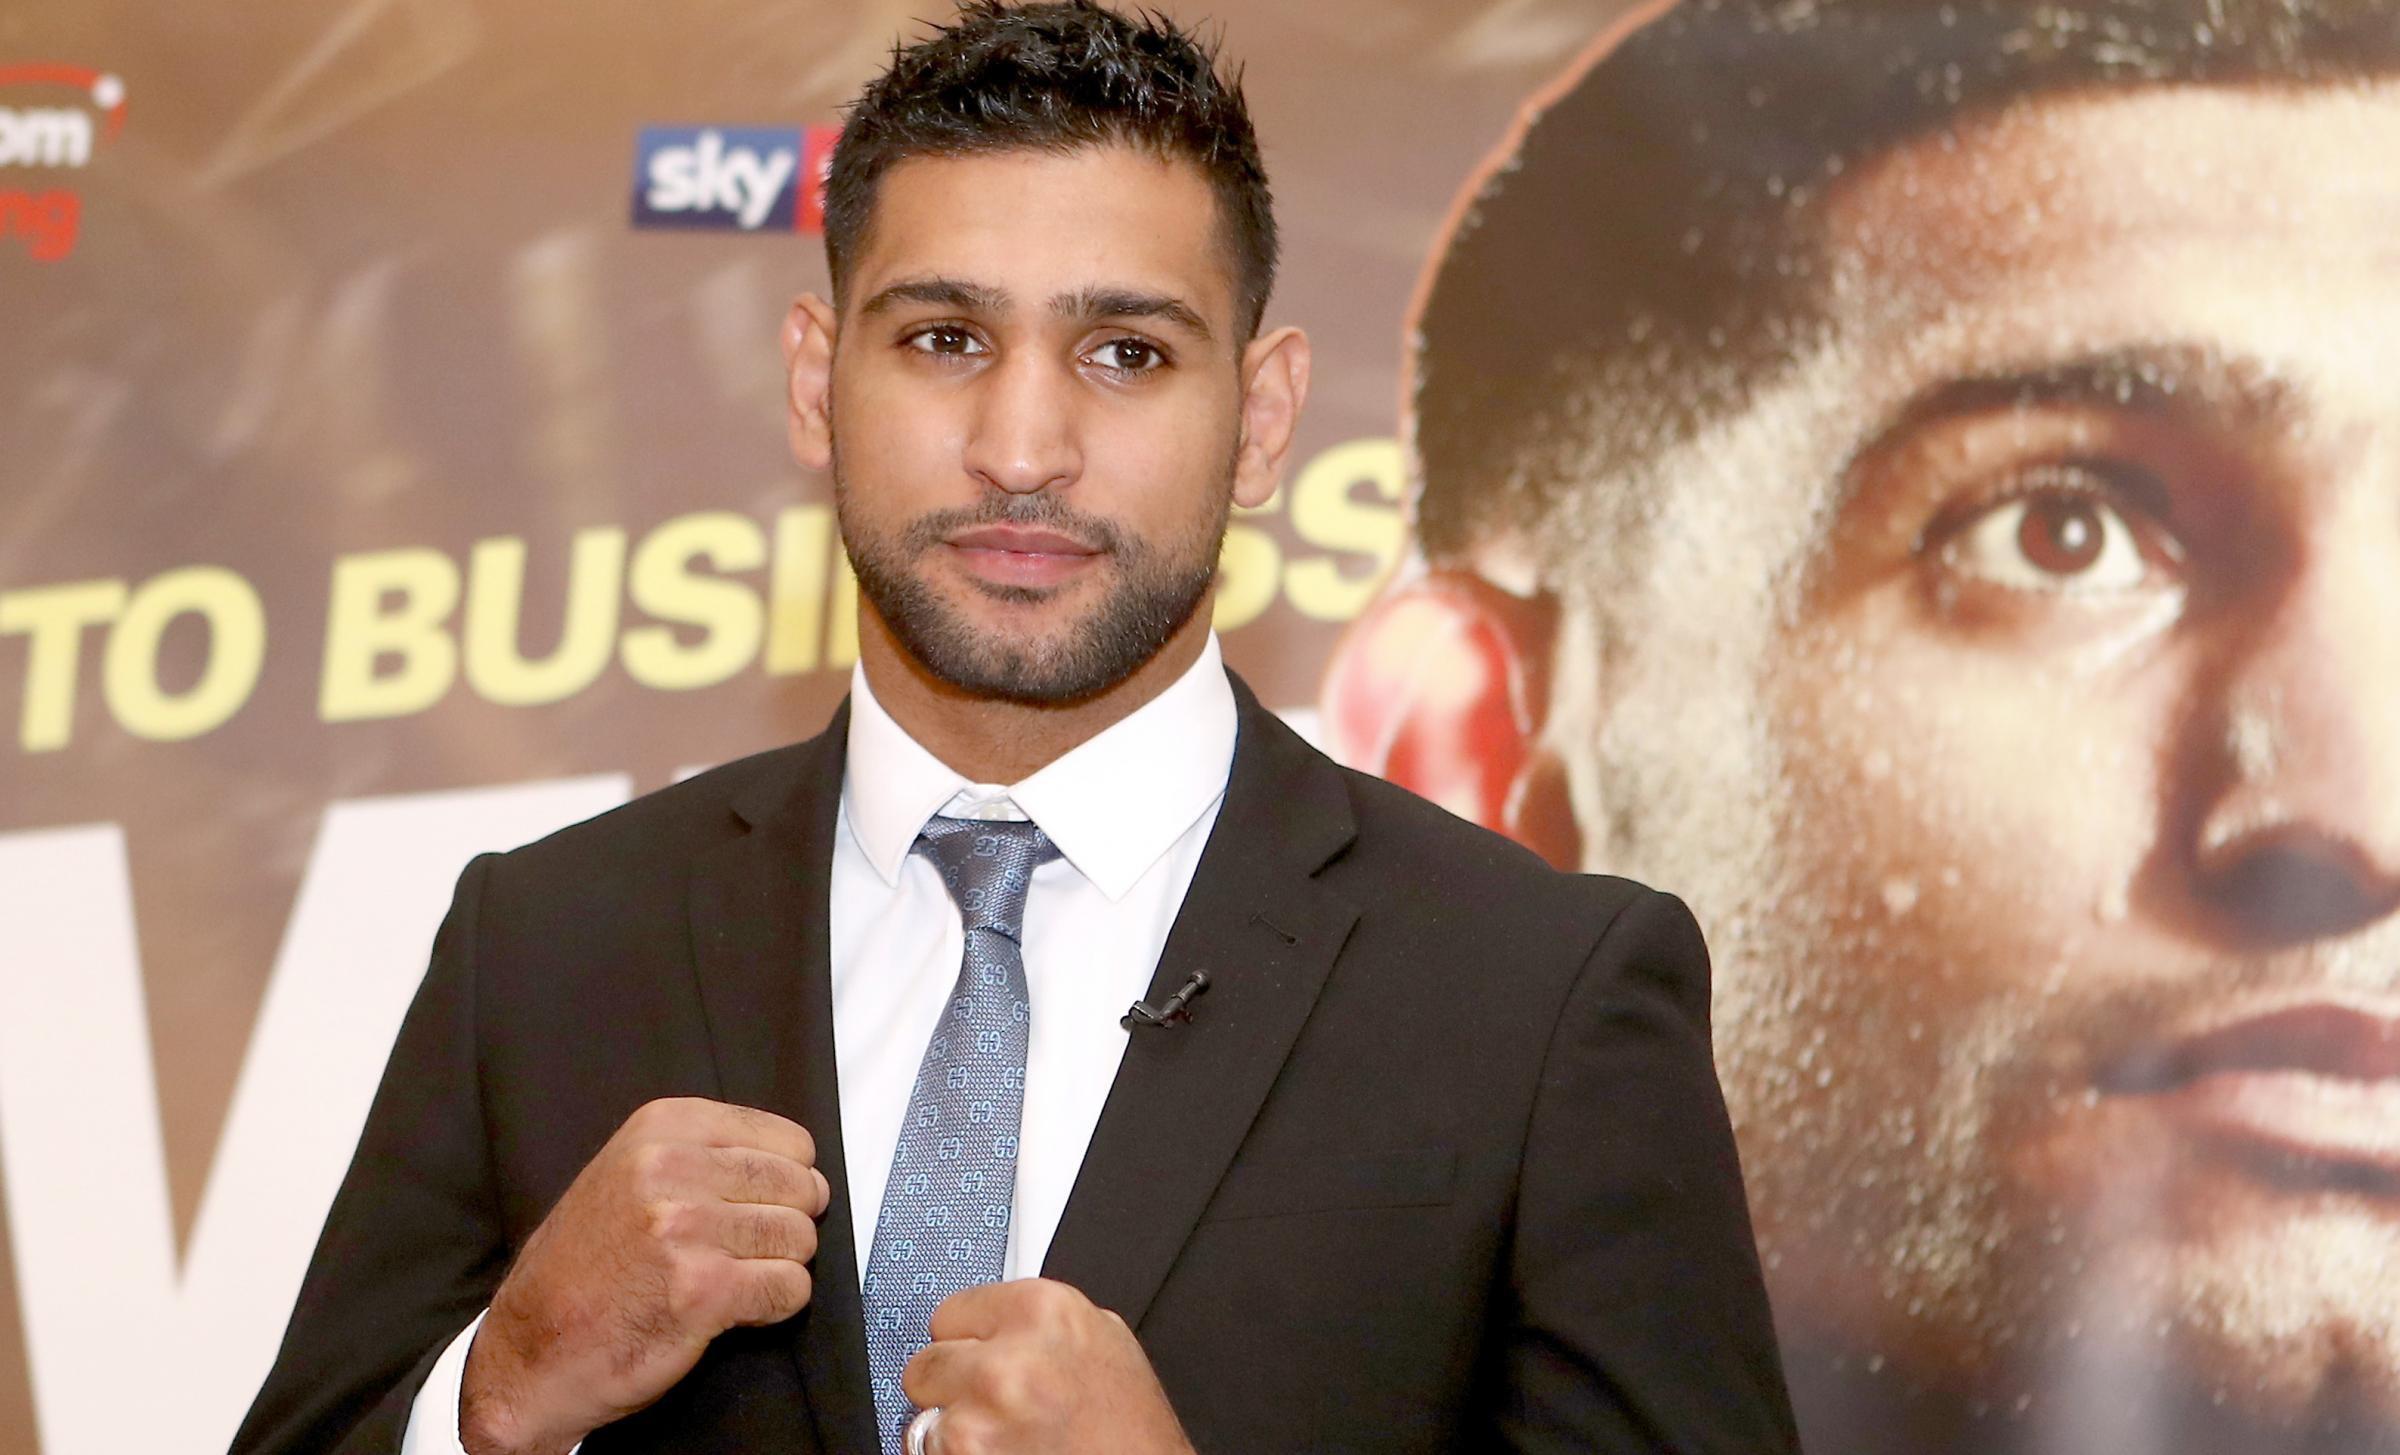 READY: Amir Khan during a press conference for his next fight